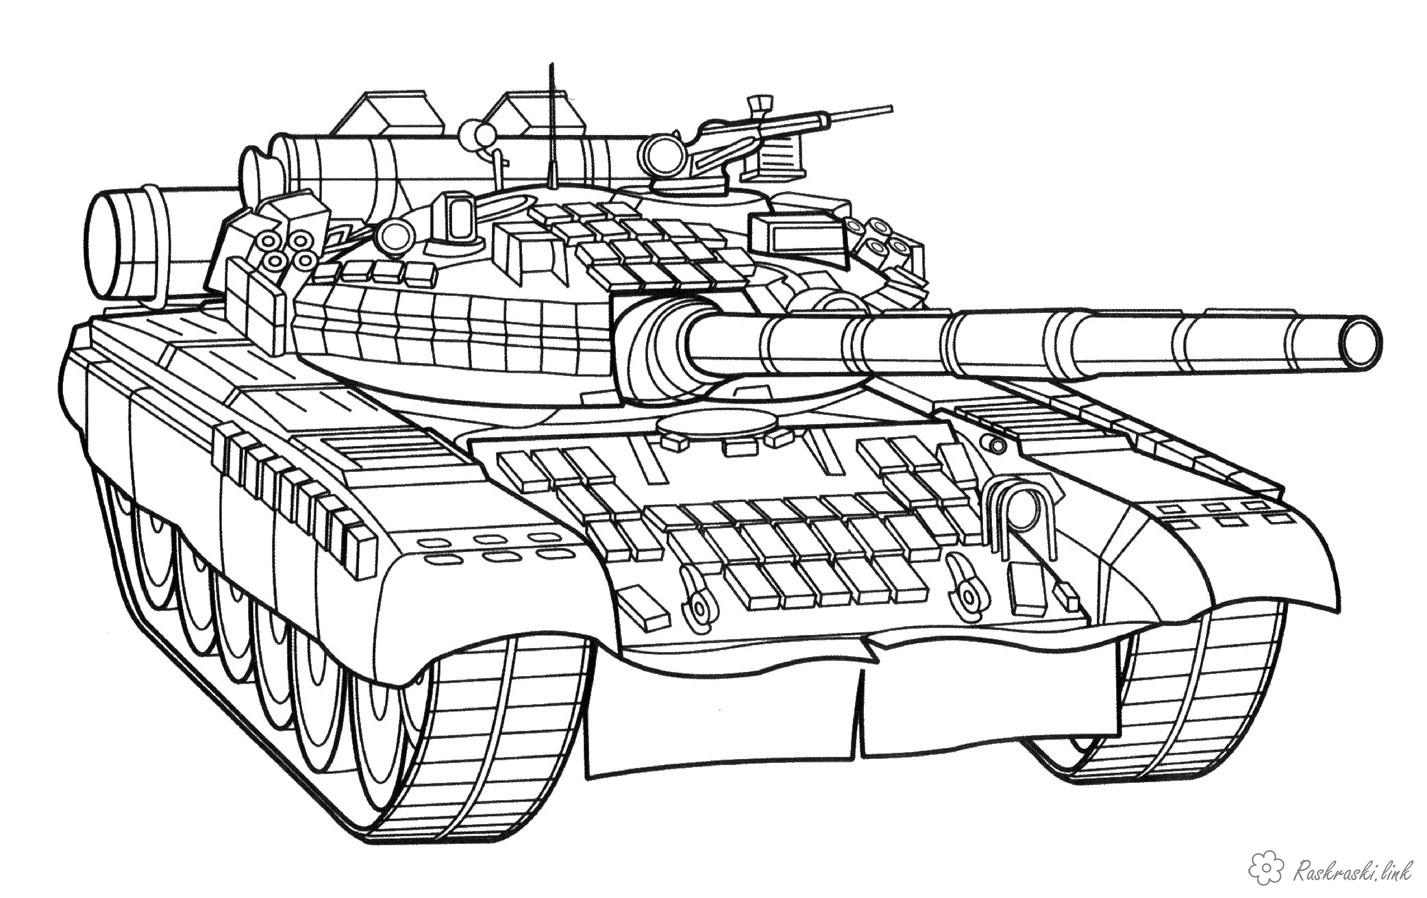 Coloring Boys coloring pages, tanks, machine guns, pistols, grenades, mines, military equipment,